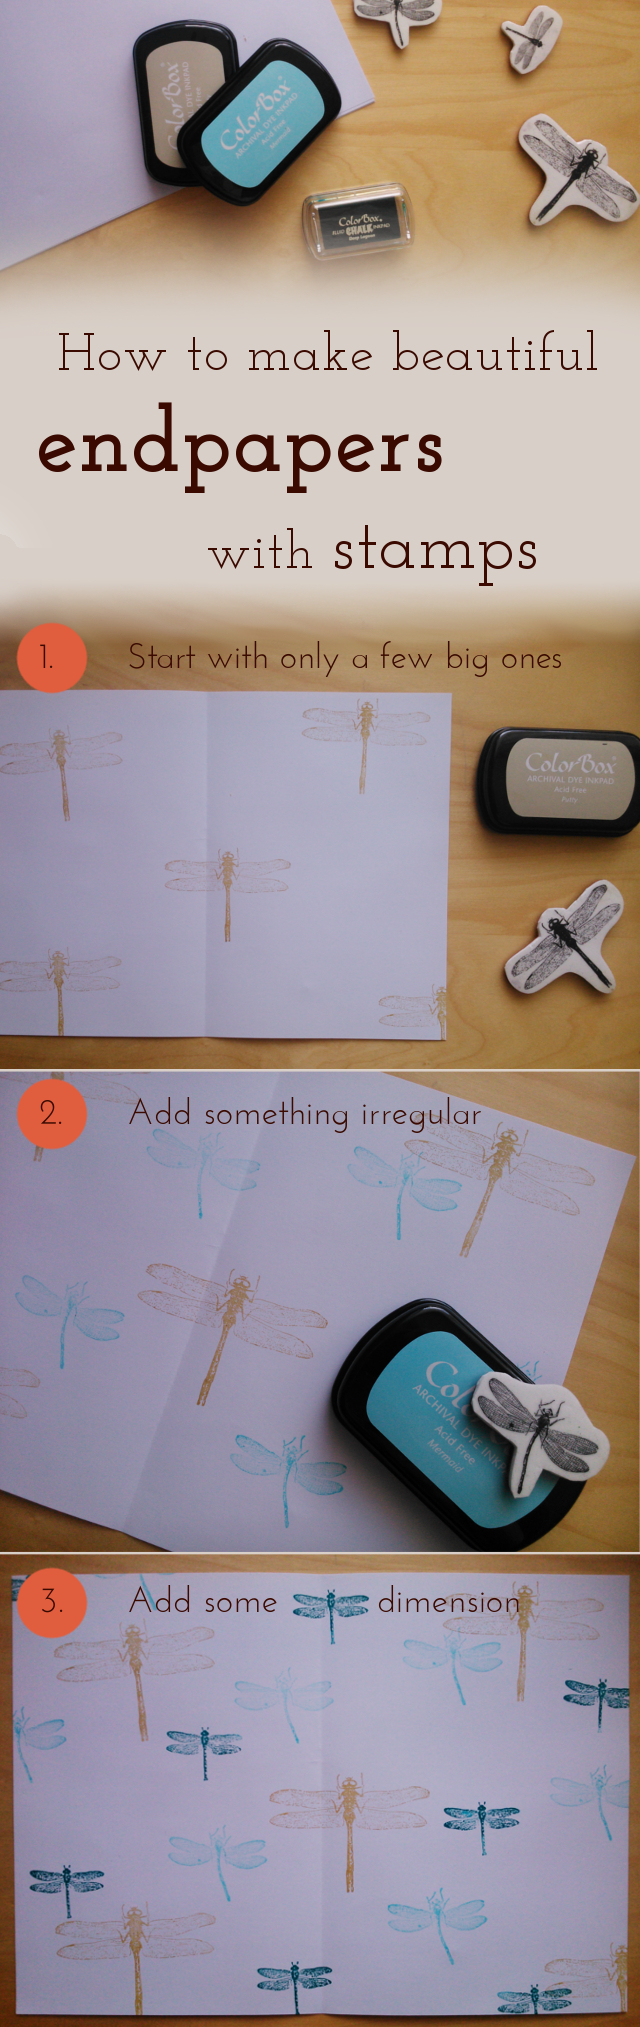 Here's a little how-to for beautiful DIY endpapers with stamps. Of course you could use this as your self-made craft paper for cards, envelopes gift wrapping paper or all other kinds of ideas.